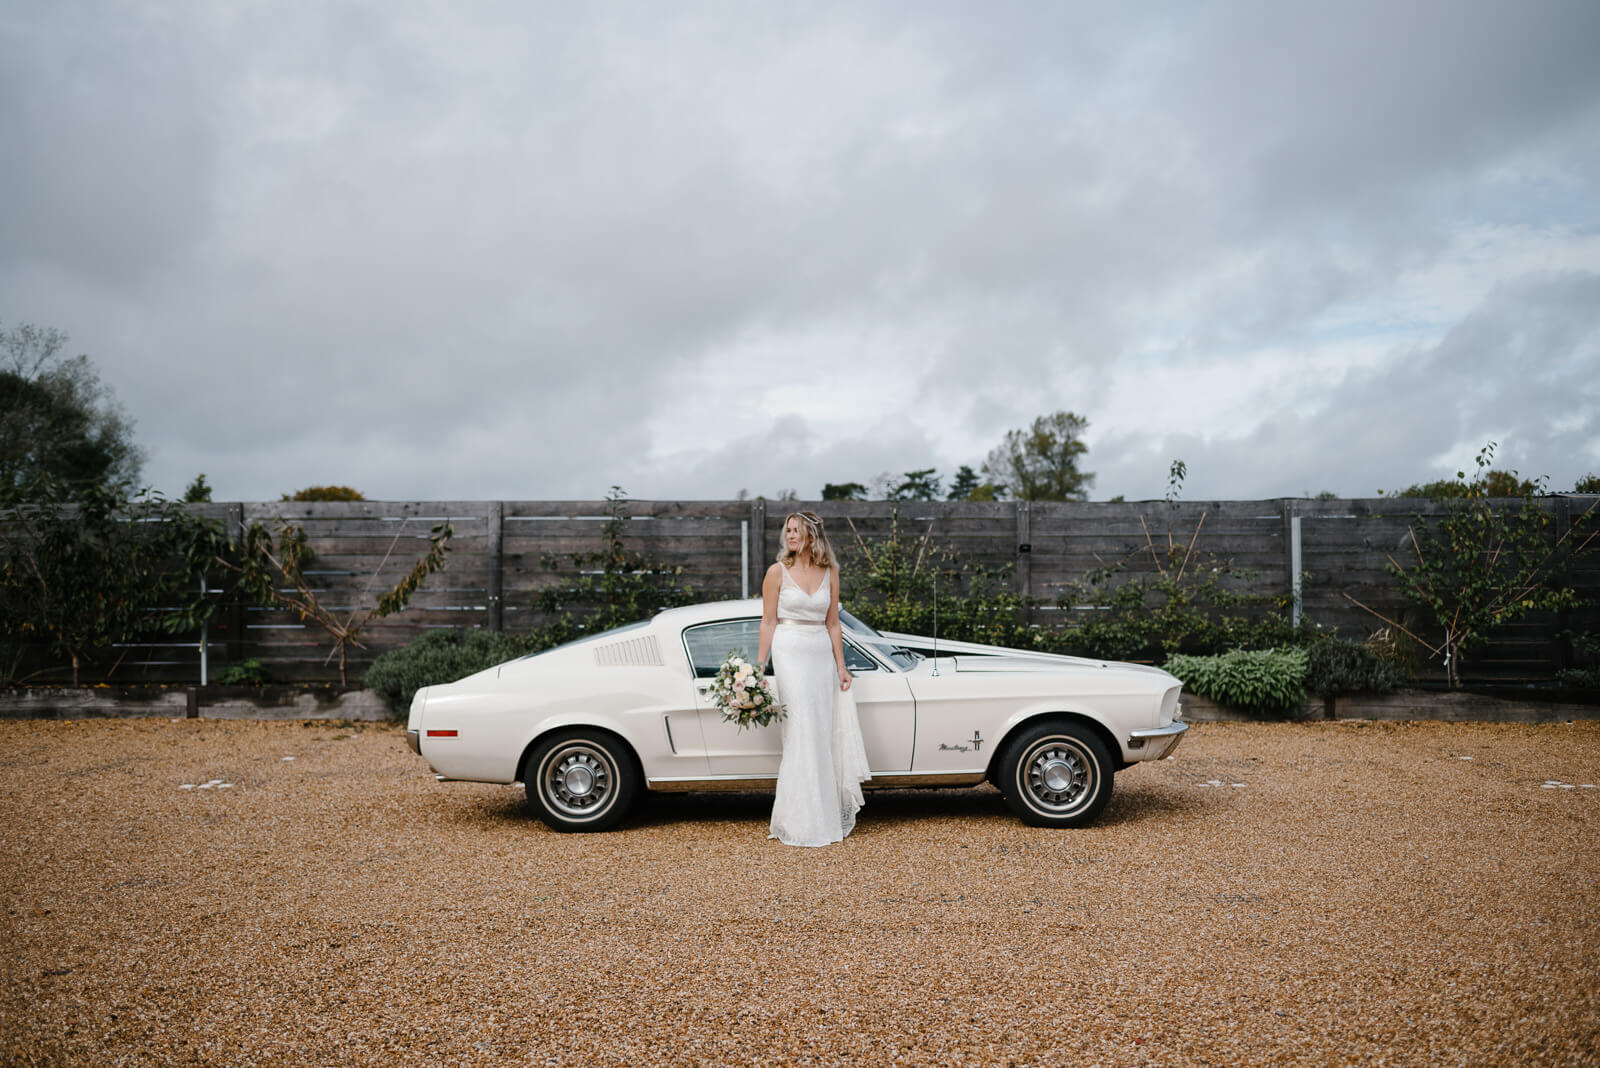 bride standing in front of vintage Mustang wedding car at Glove Factory Studios